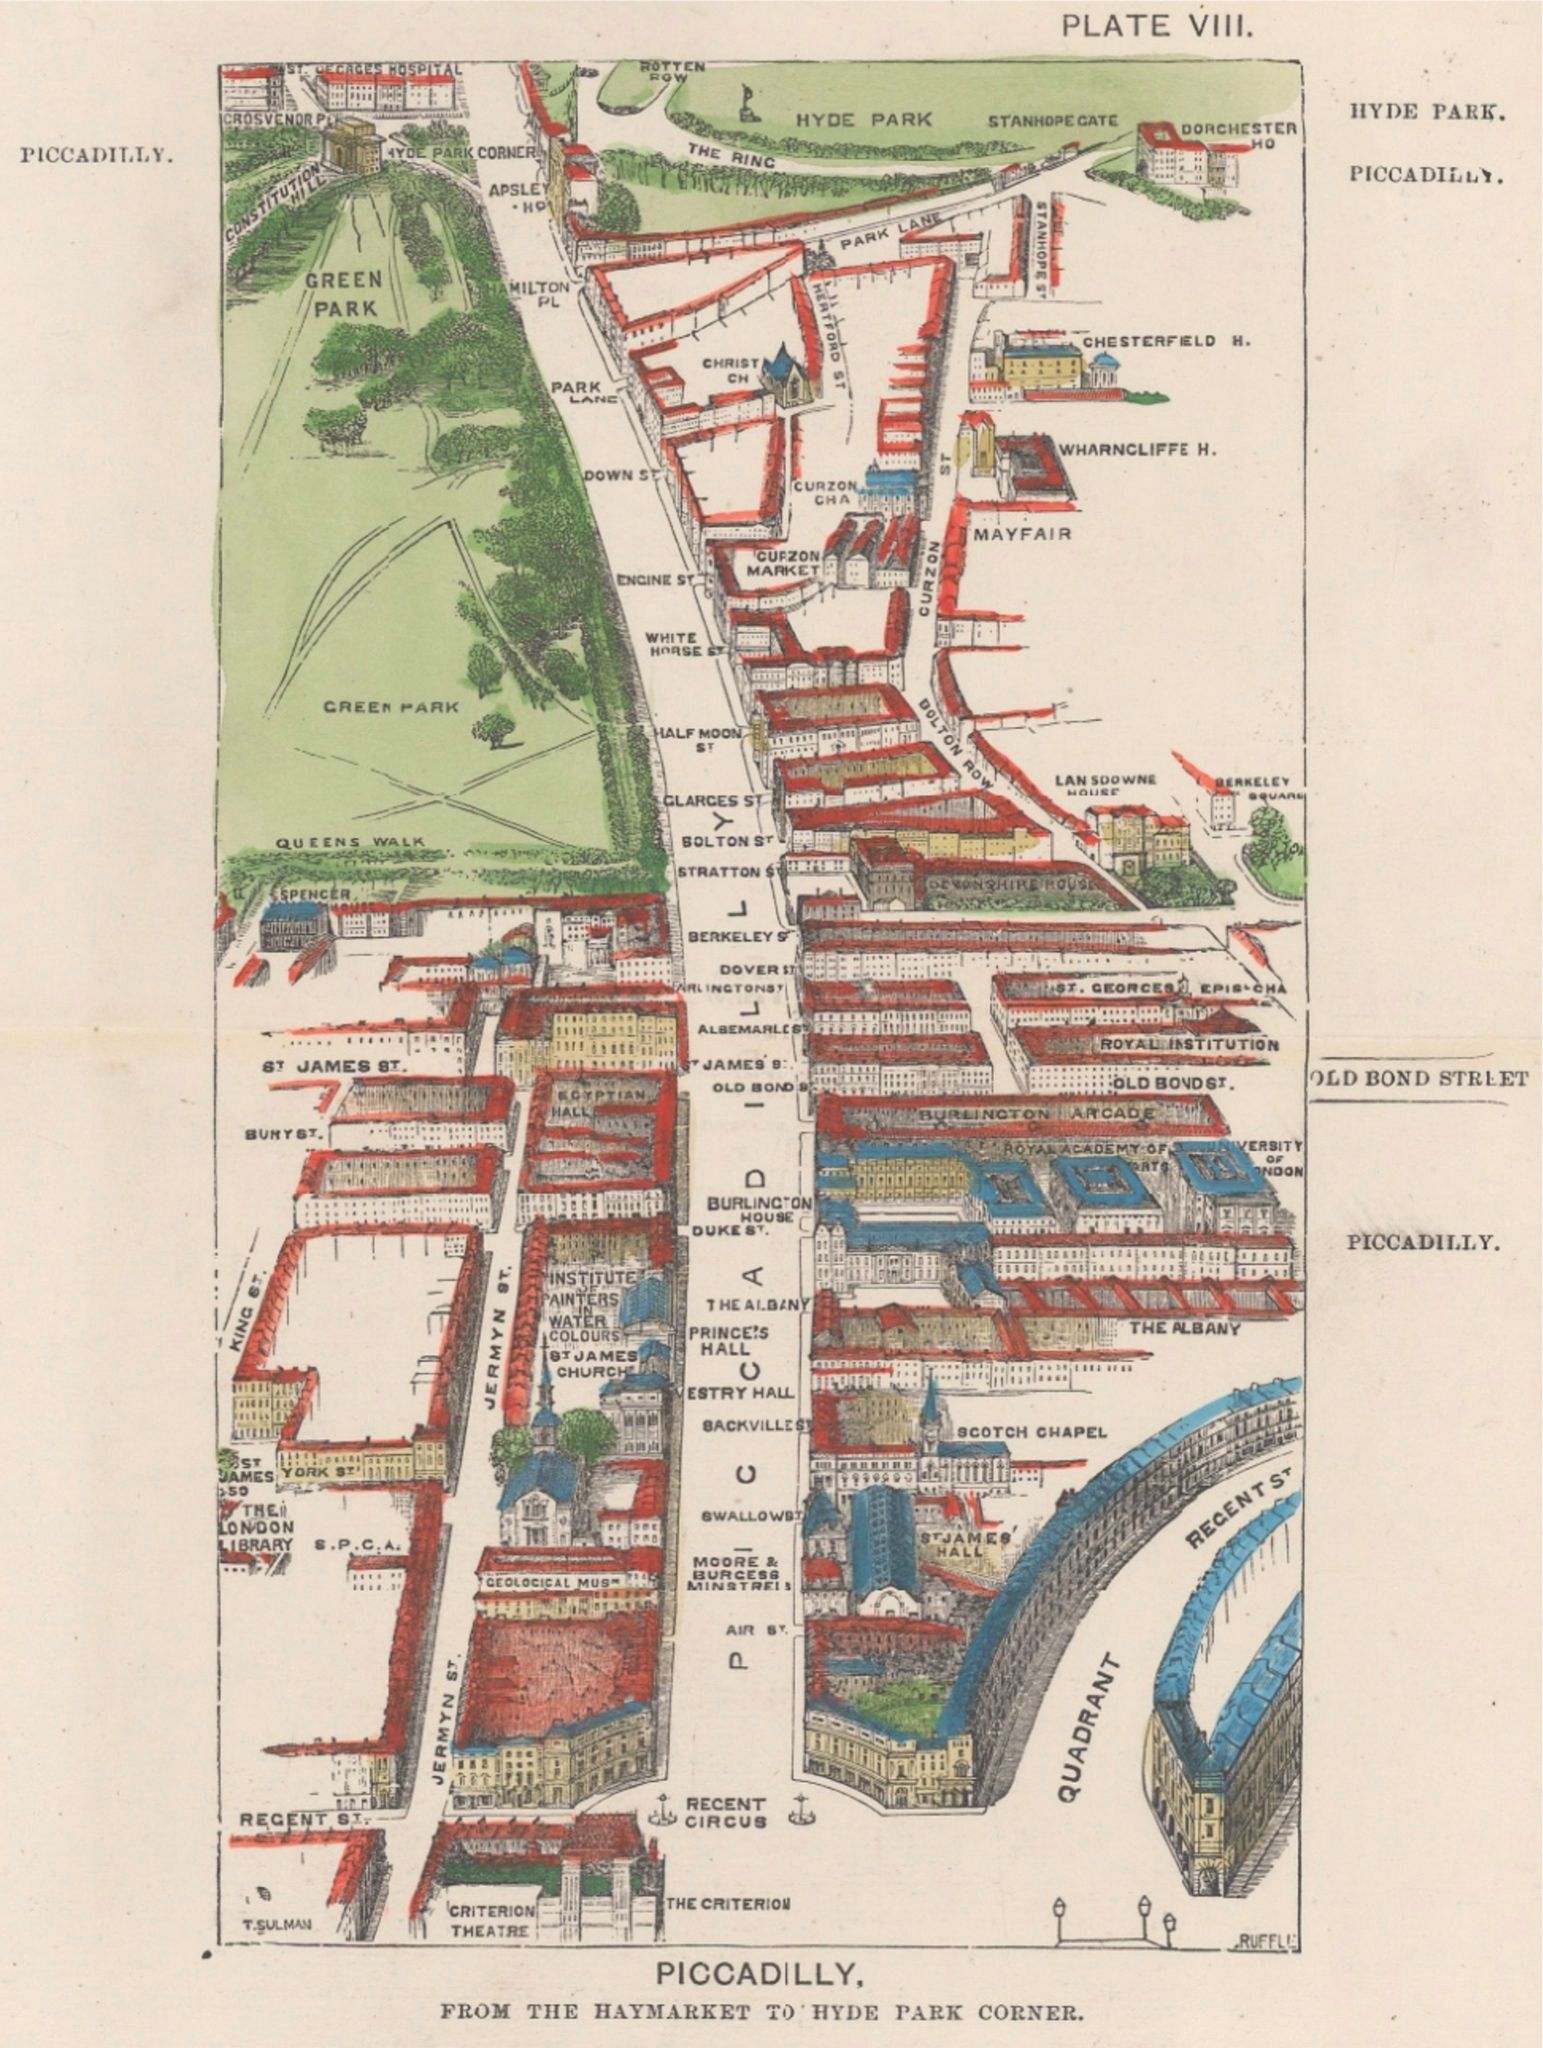 1880 Map of Piccadilly, London